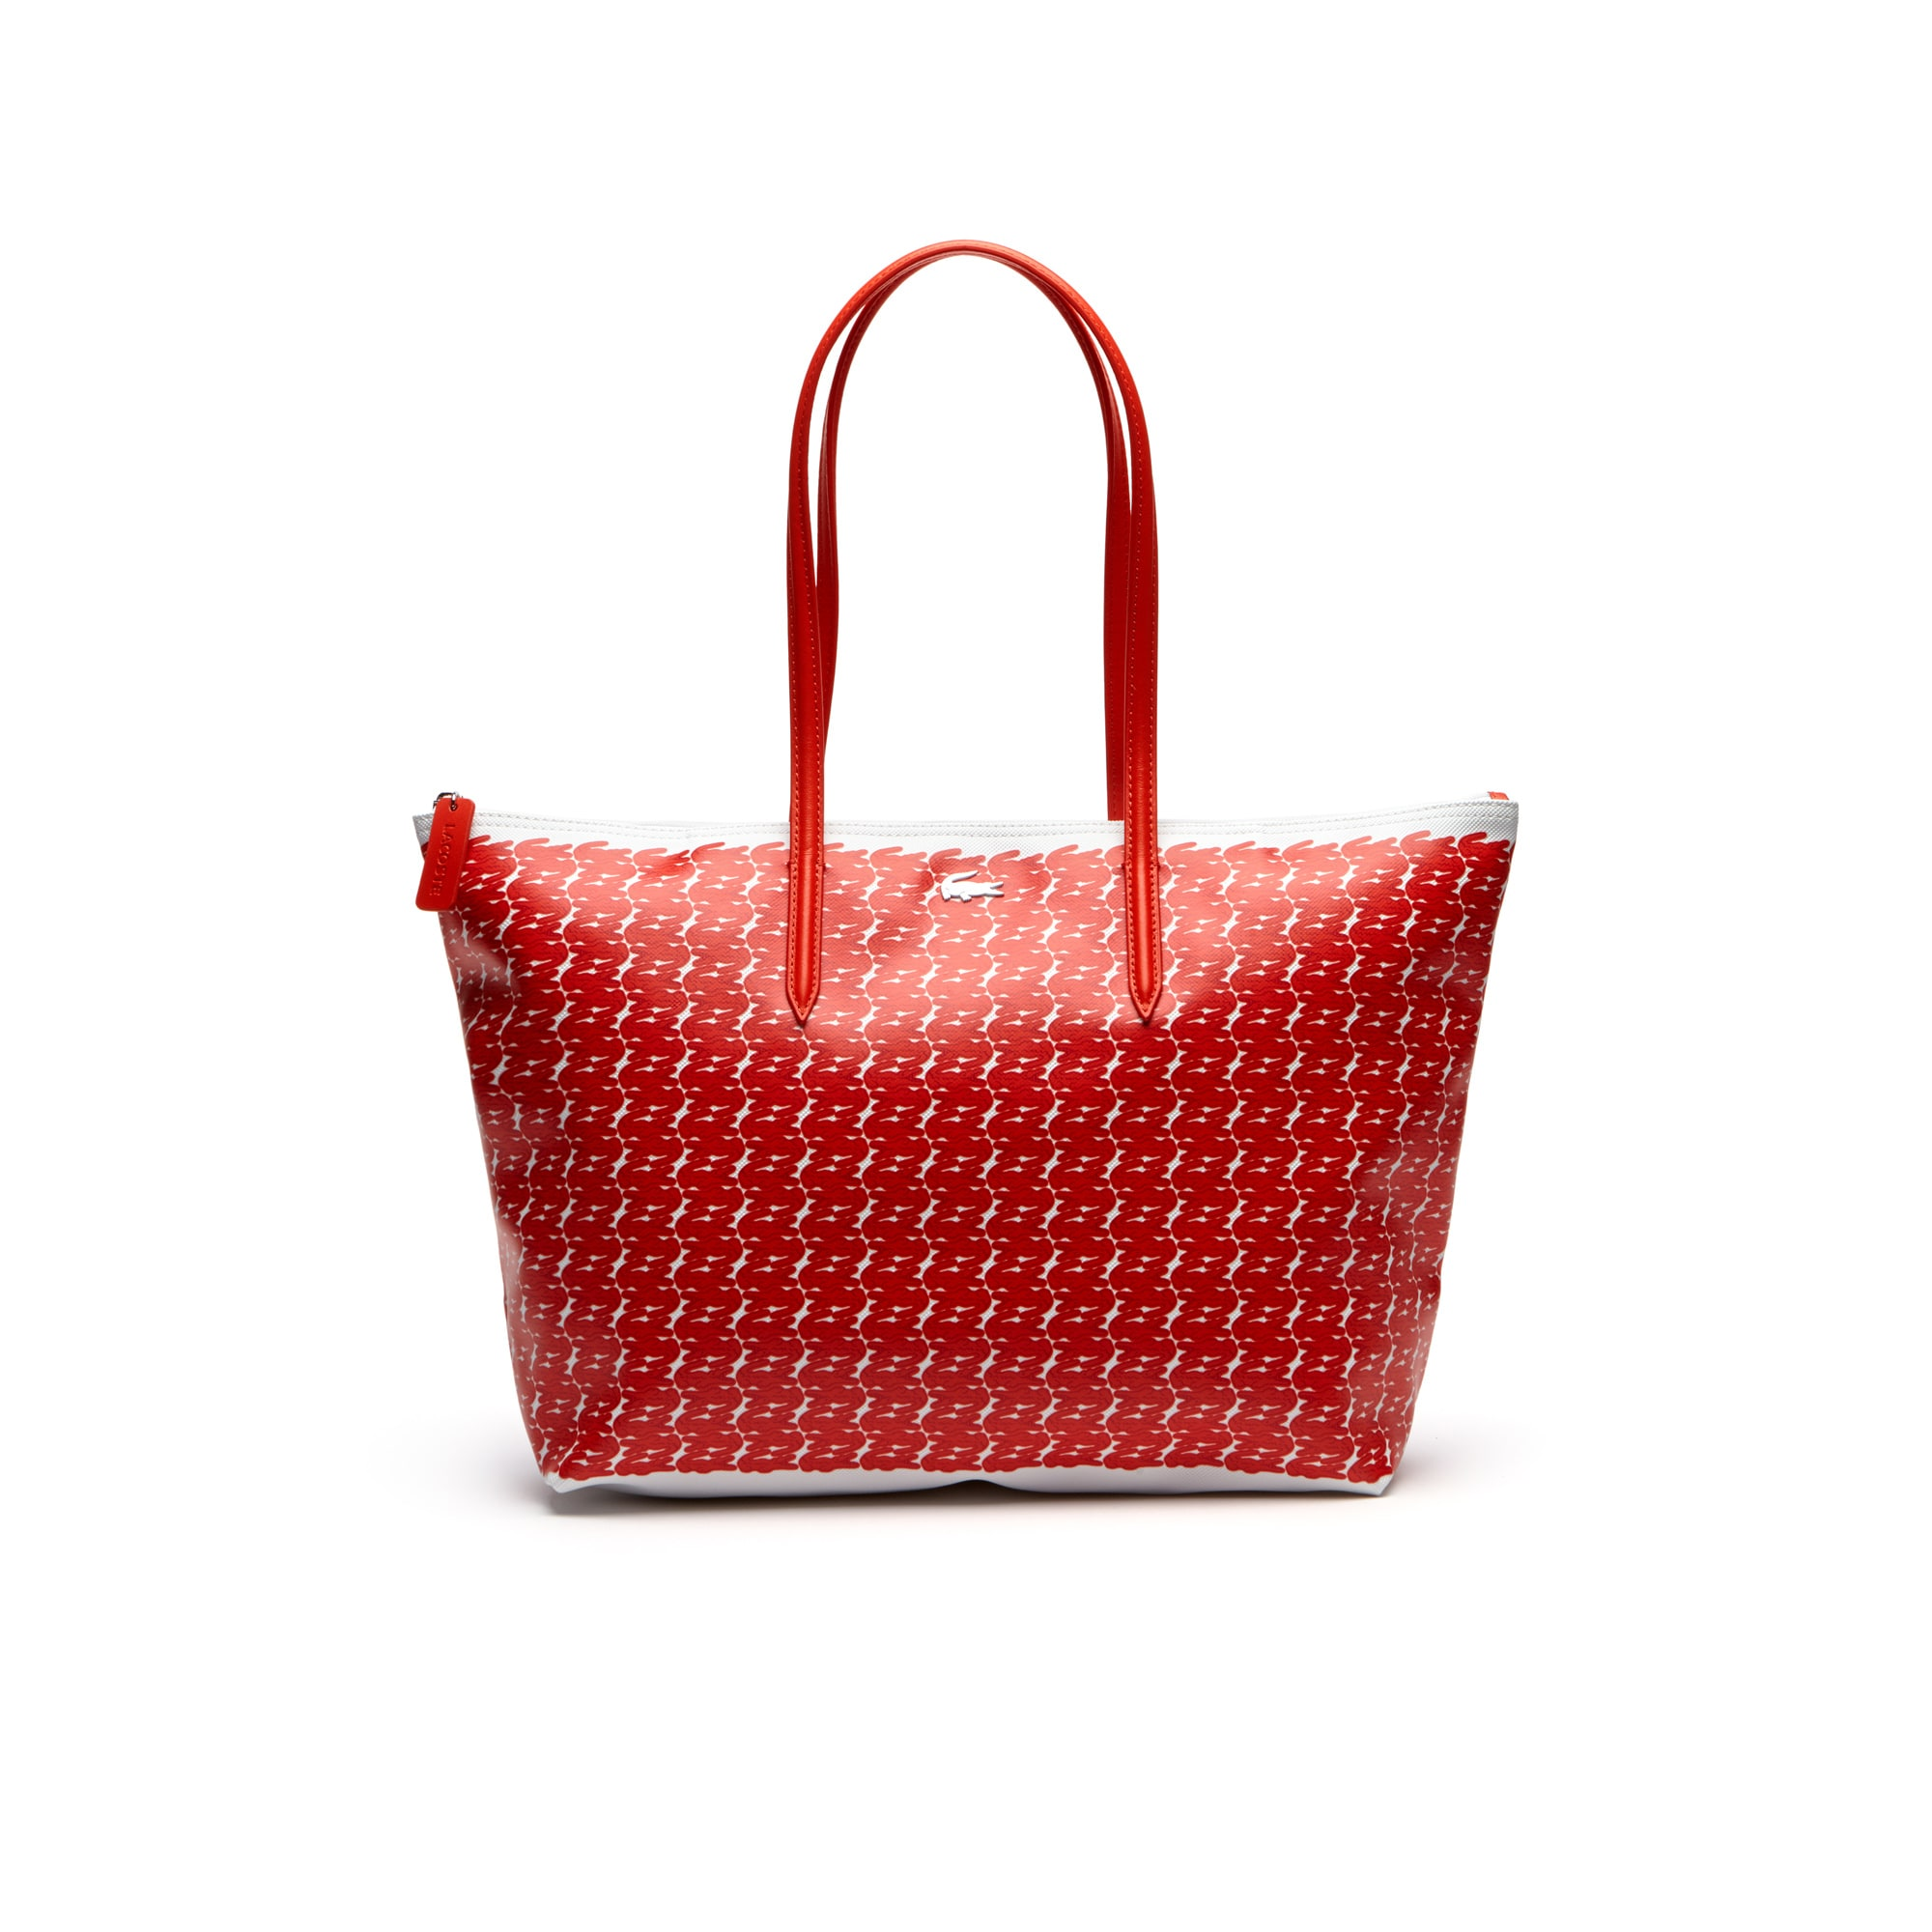 Women's L.12.12 Concept Croc Shopping Bag